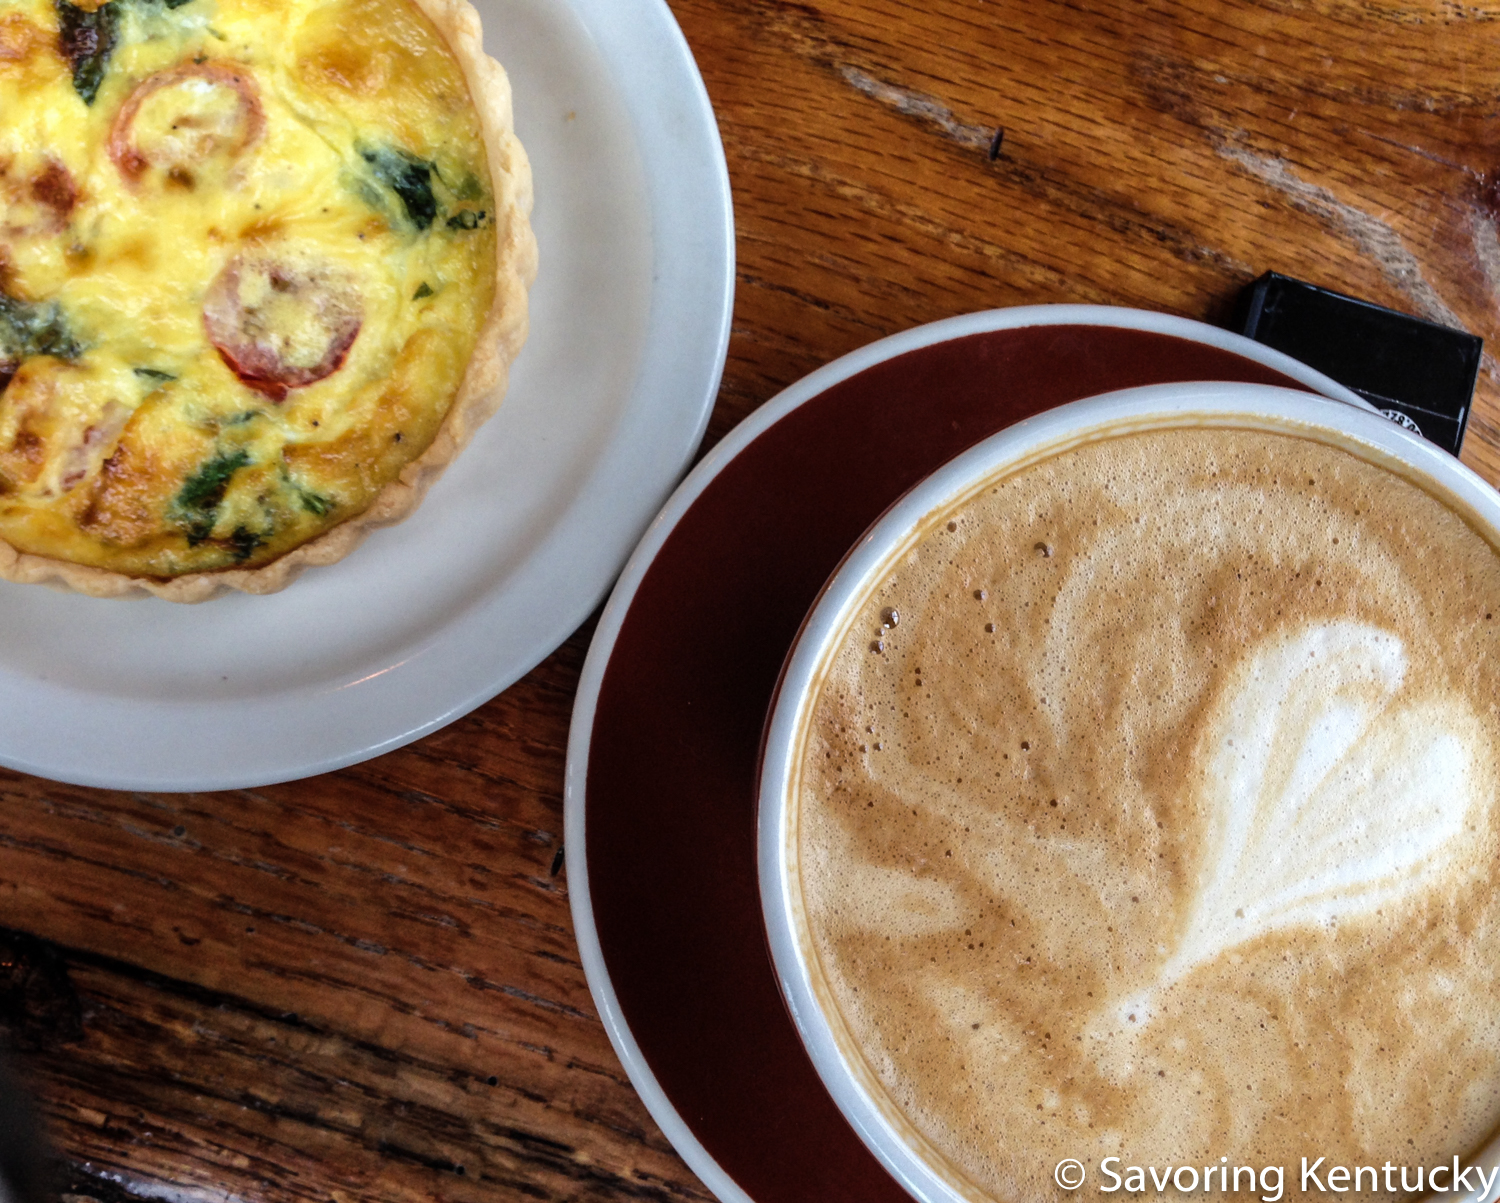 Quiche and breve latte at  Daily Offerings Coffee Roastery . The quiche and all pastries are gluten-free and made in house.